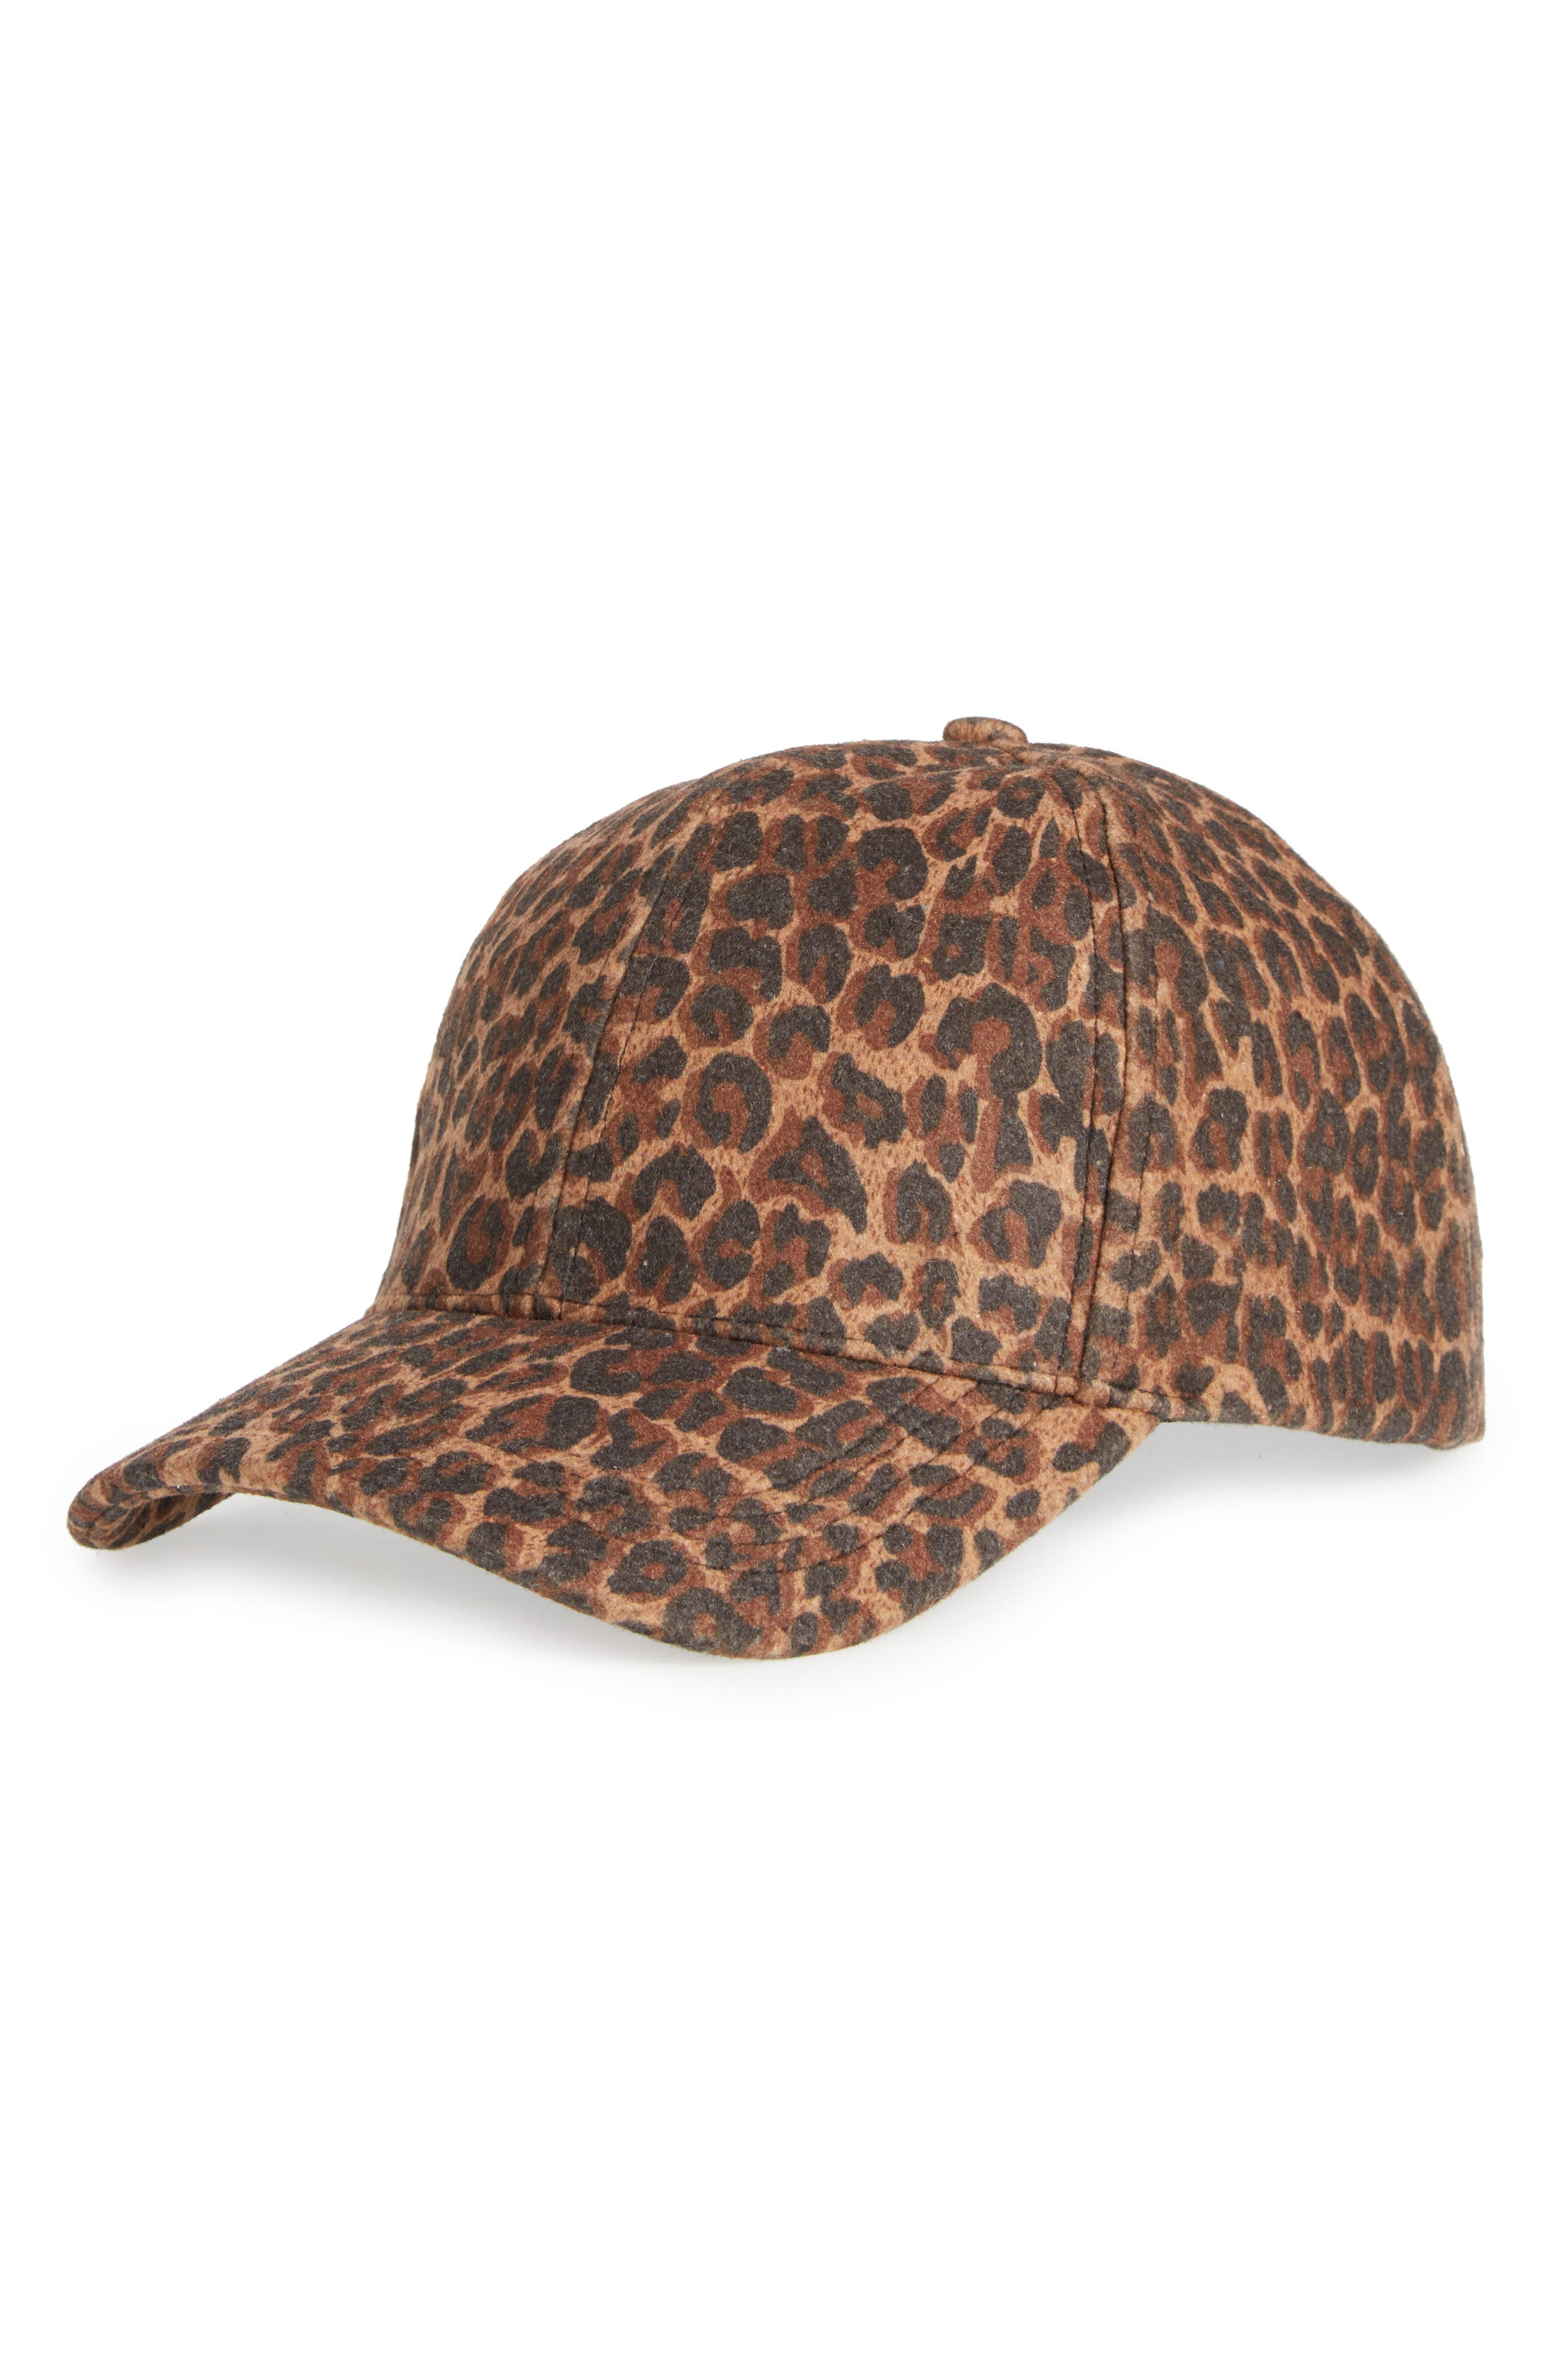 Leopard Print Ball Cap,                         Main,                         color, Brown